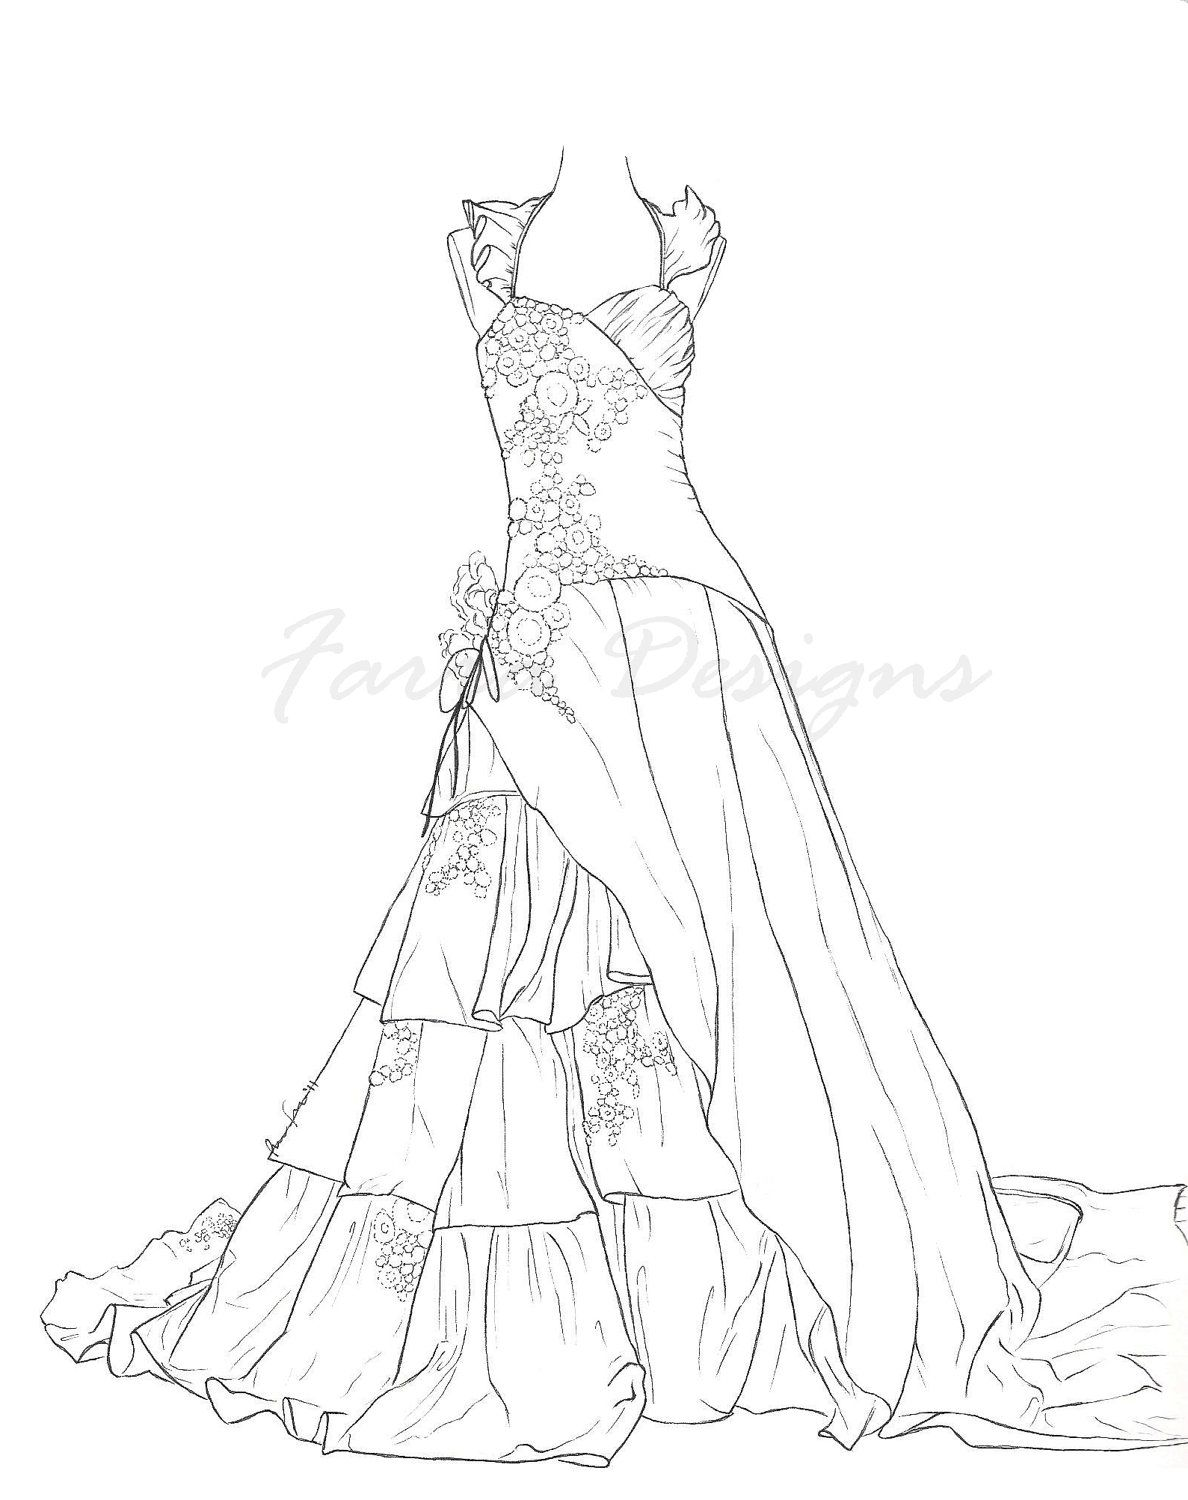 Barbie Night Dress Coloring 01 Pinteres Princess Dress Coloring Pages Free Coloring Sheets